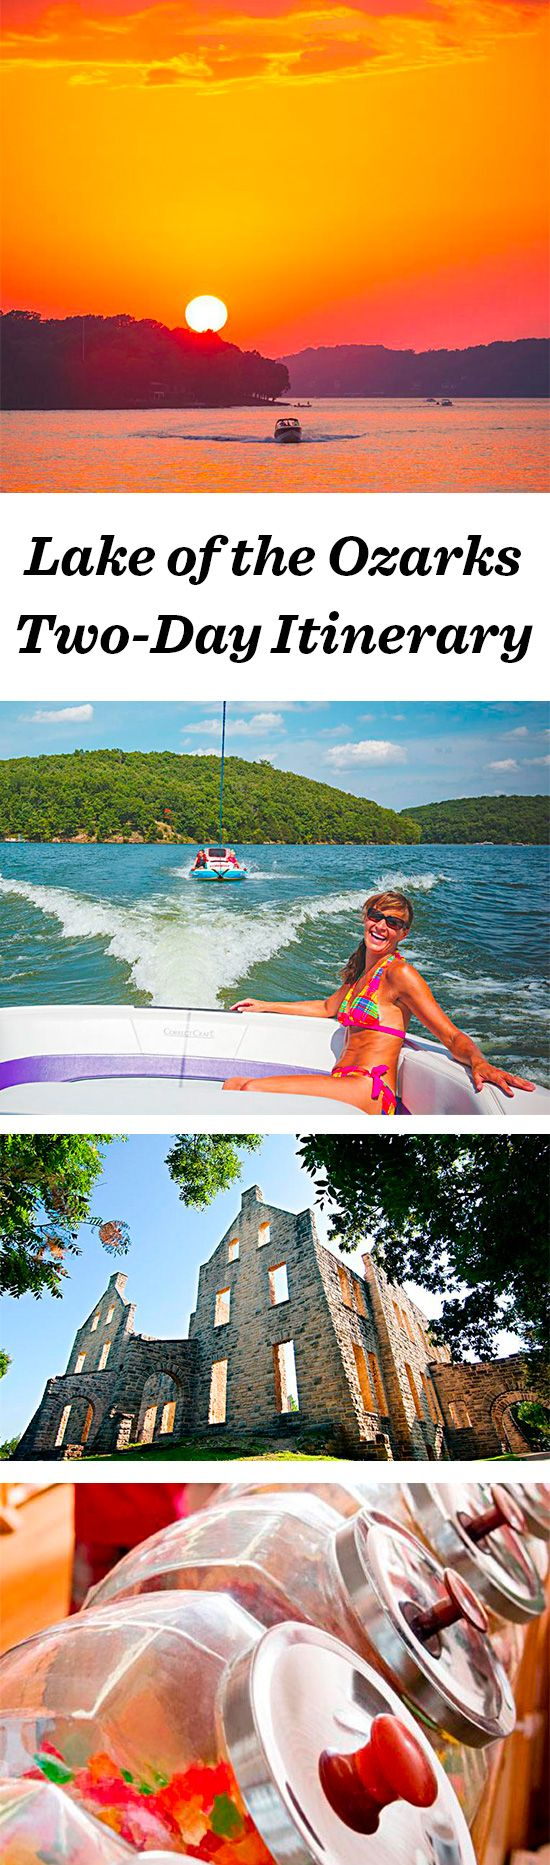 This reservoir in central Missouri has a rep as a full-throttle boating vacation destination: http://www.midwestliving.com/travel/missouri/lake-of-the-ozarks/lake-of-the-ozarks-two-day-itinerary/ #lake #ozarks #missouri #vacation